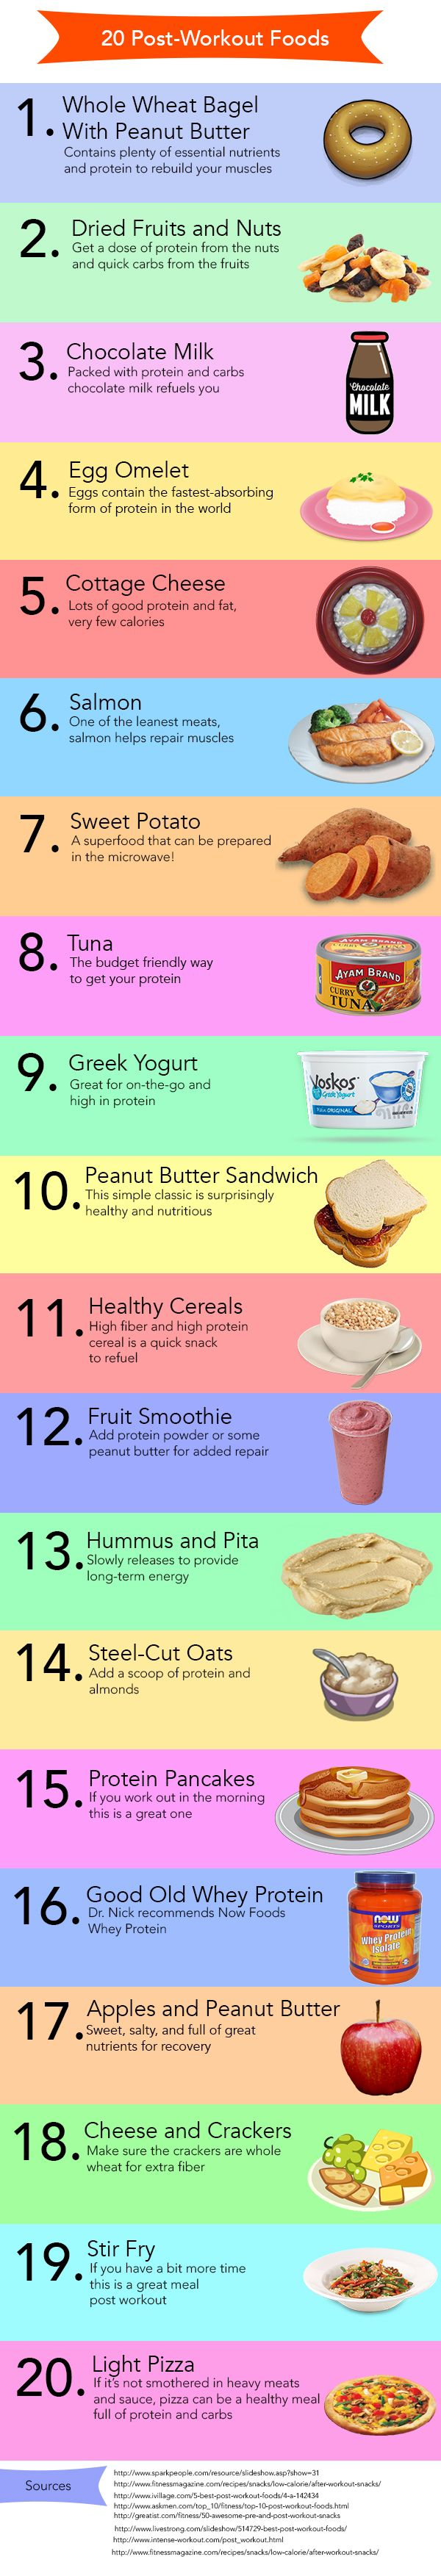 These are some of the best foods to eat after working out. ~ www.welfm.com/blog